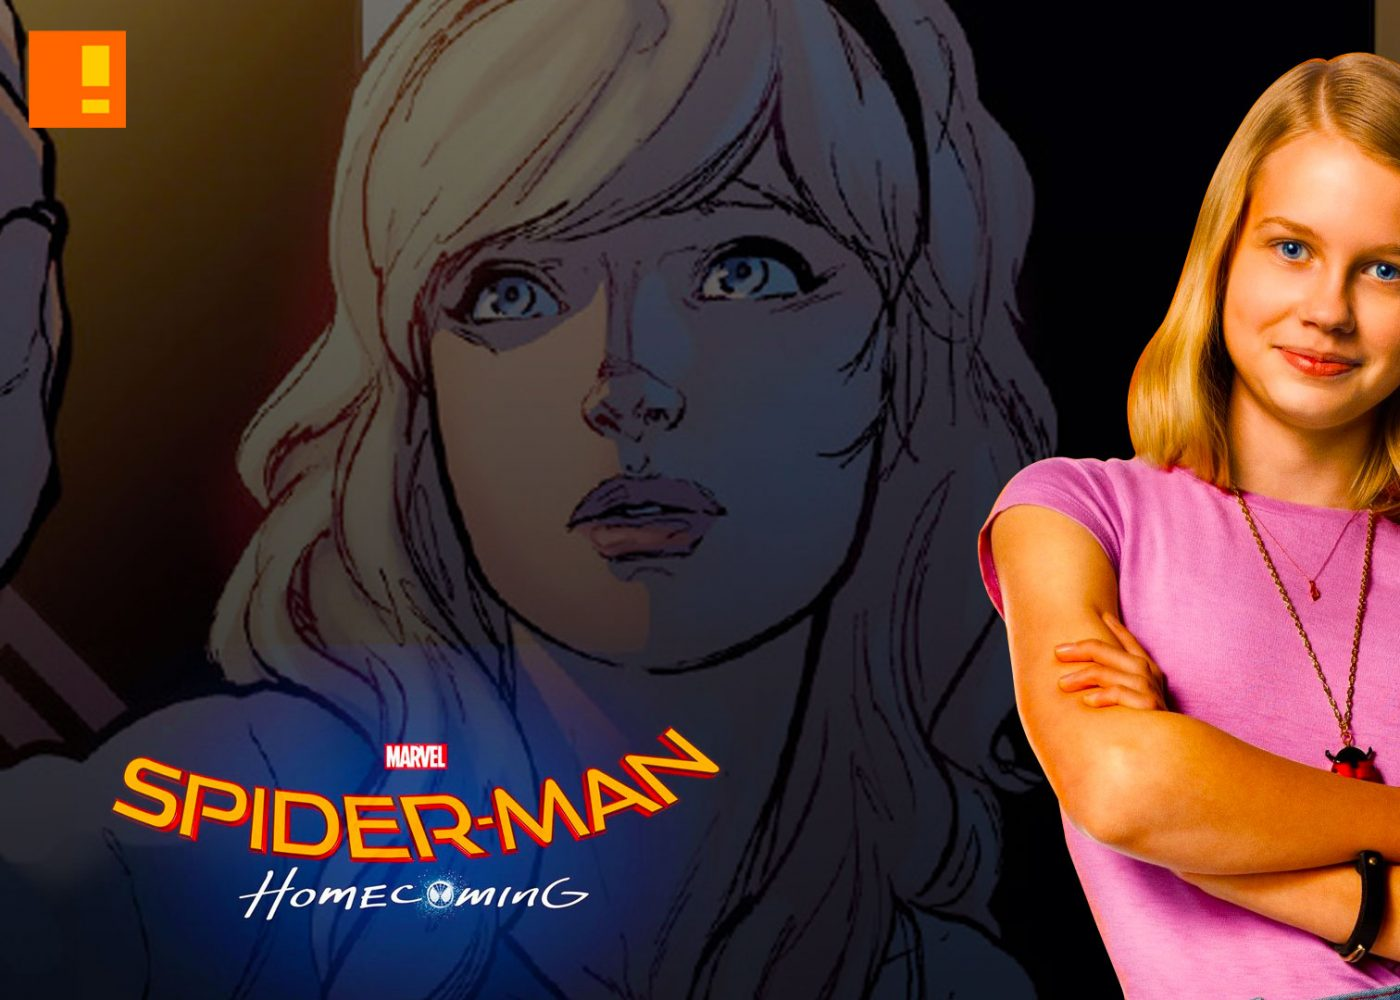 spiderman, spider-man, spider-man: homecoming, Angourie Rice, spiderman homecoming, spider-man homecoming, casting, actor, the nice guys, marvel, marvel comics, spider gwen, gwen stacy, the action pixel